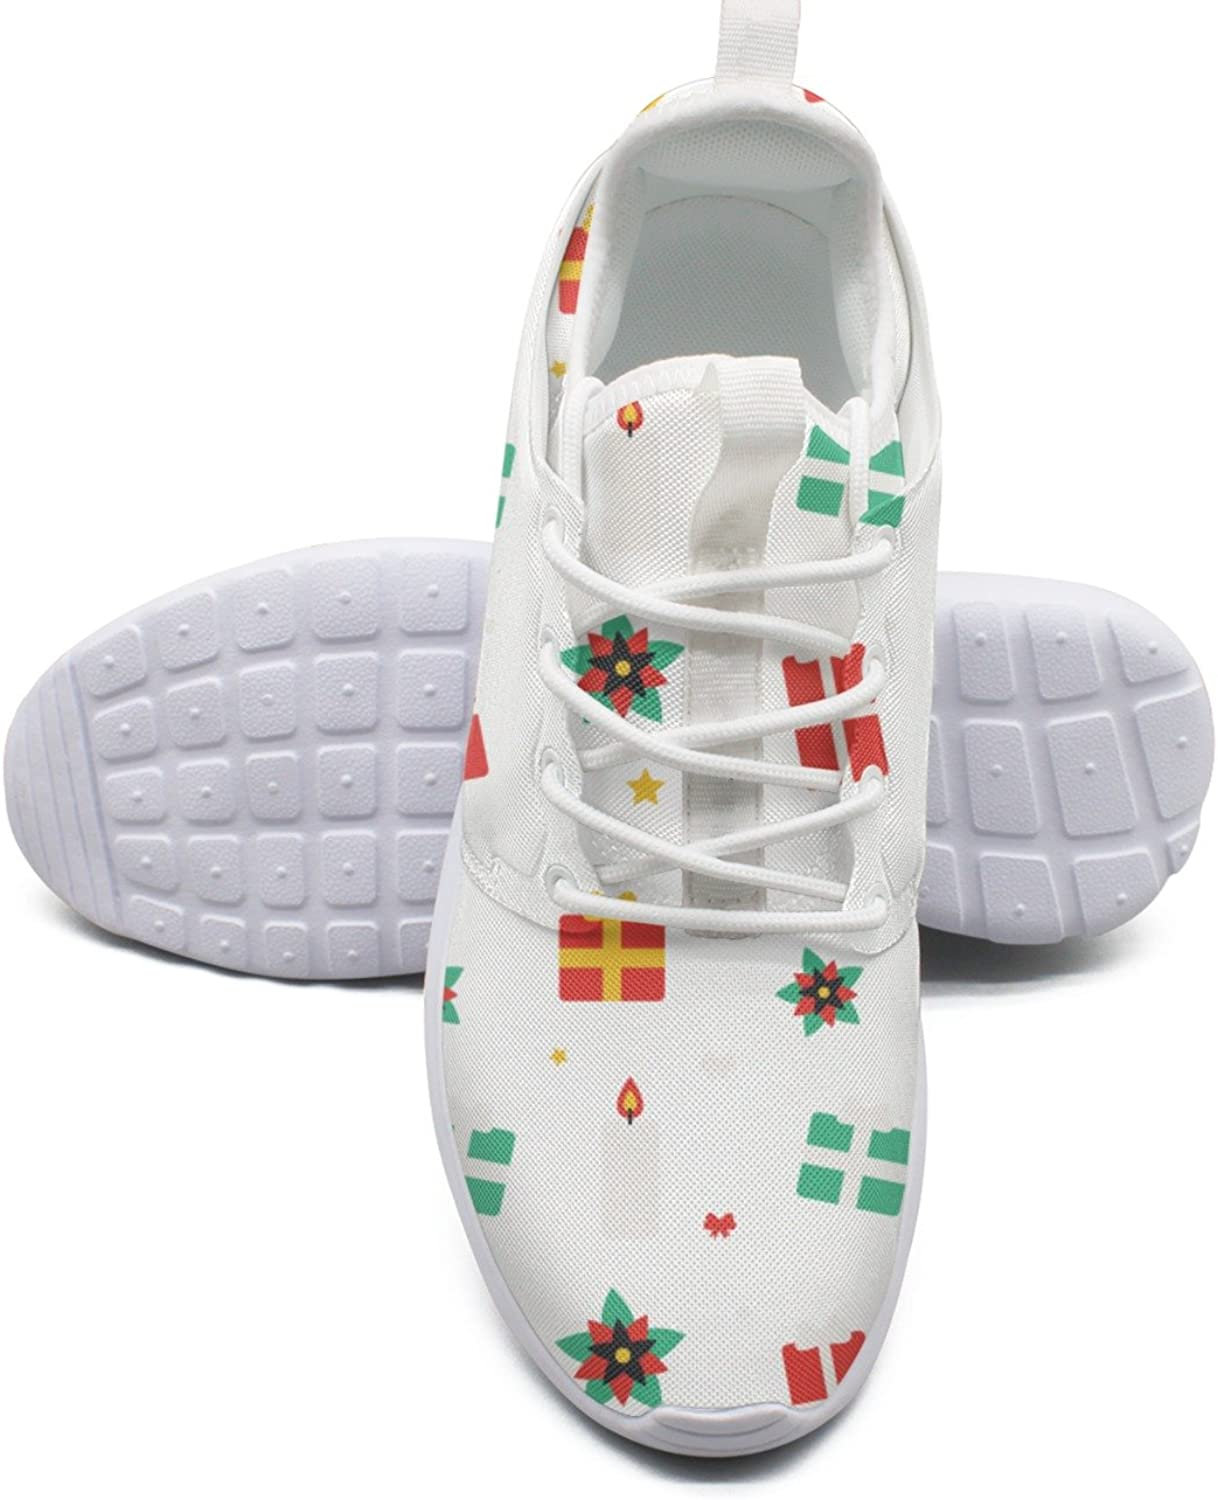 Women's Fashion Lightweight Sneakers shoes Christmas Pattern-01 Print Boat shoes